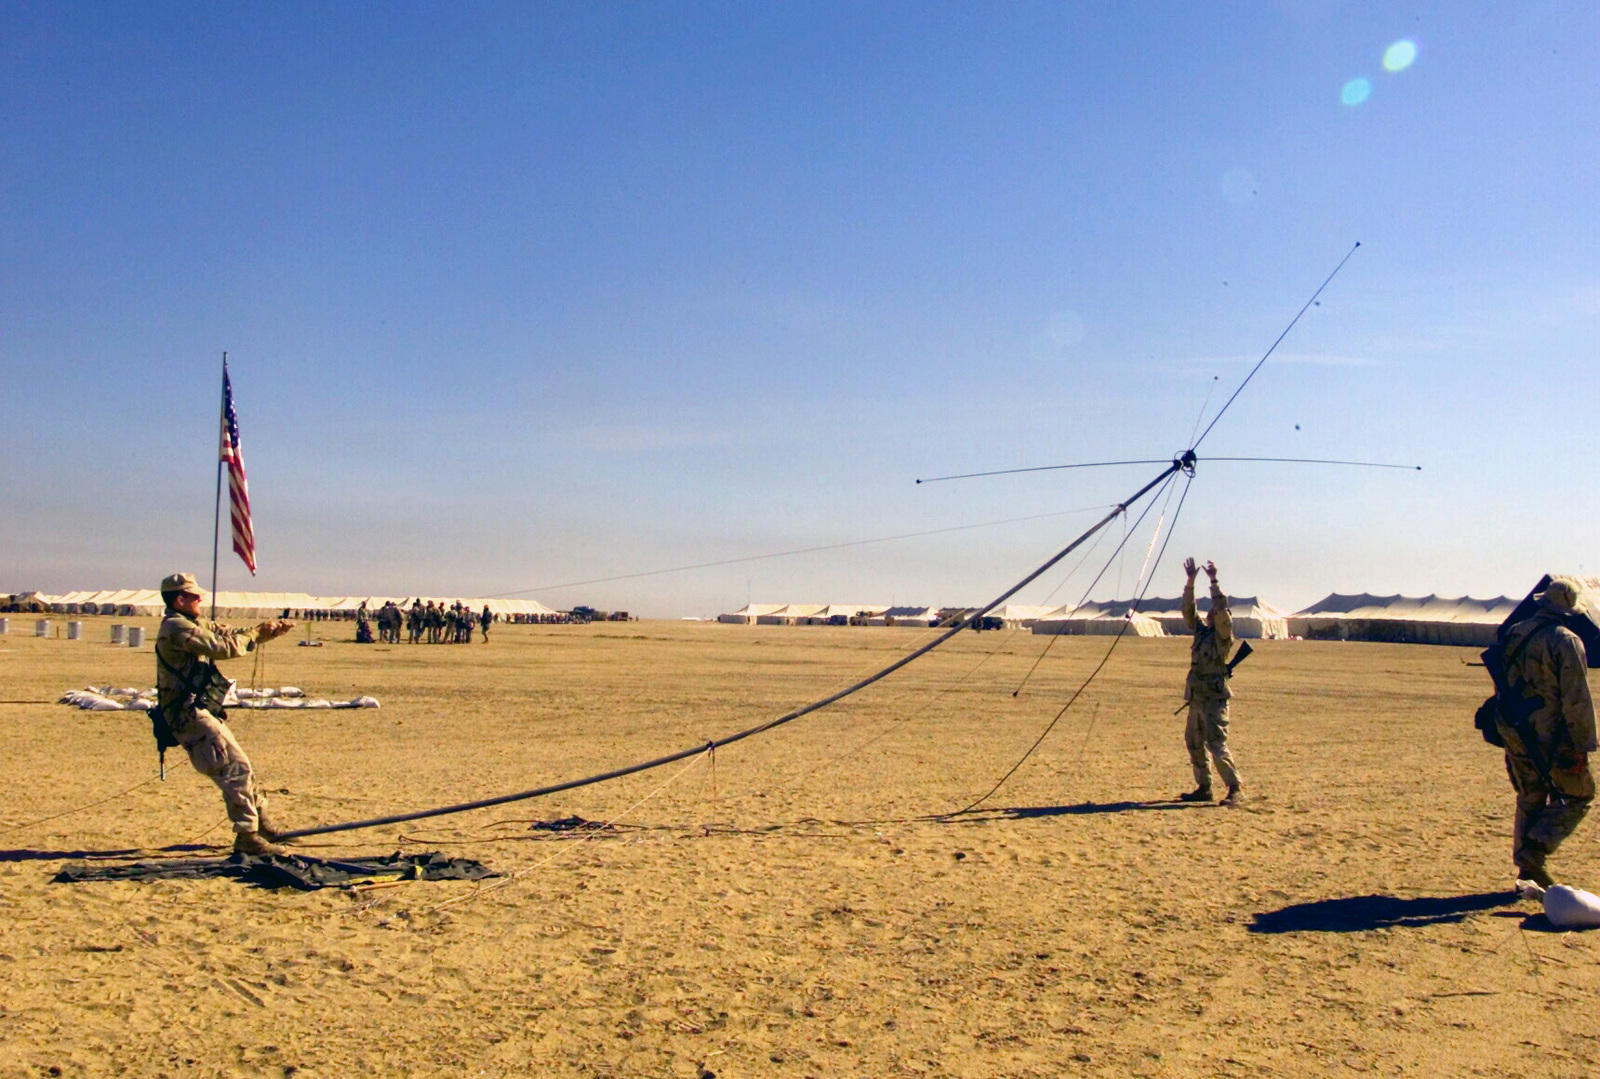 US Marine Corps (USMC) Marines raise a High Frequency (HF